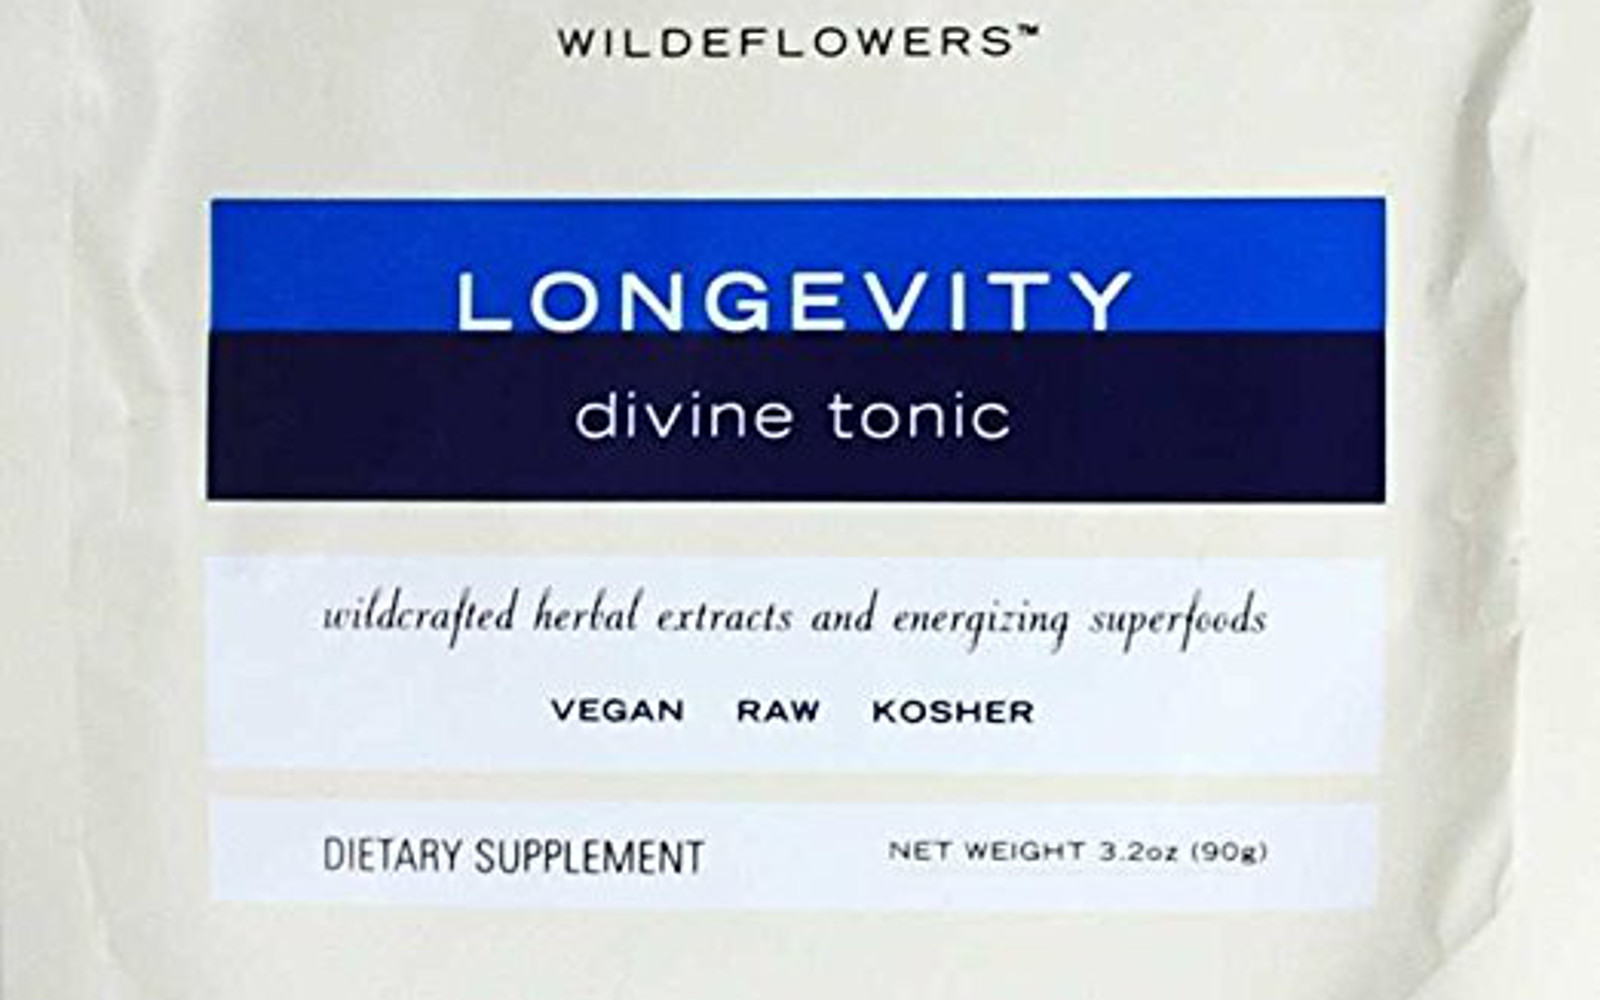 Wildeflowers Longevity Divine Tonic Hot Chocolate Mix - Organic, Natural, Kosher, Vegan, Gluten Free, Rich In Zinc And Iron With Raw Cacao, 3.2 Ounces